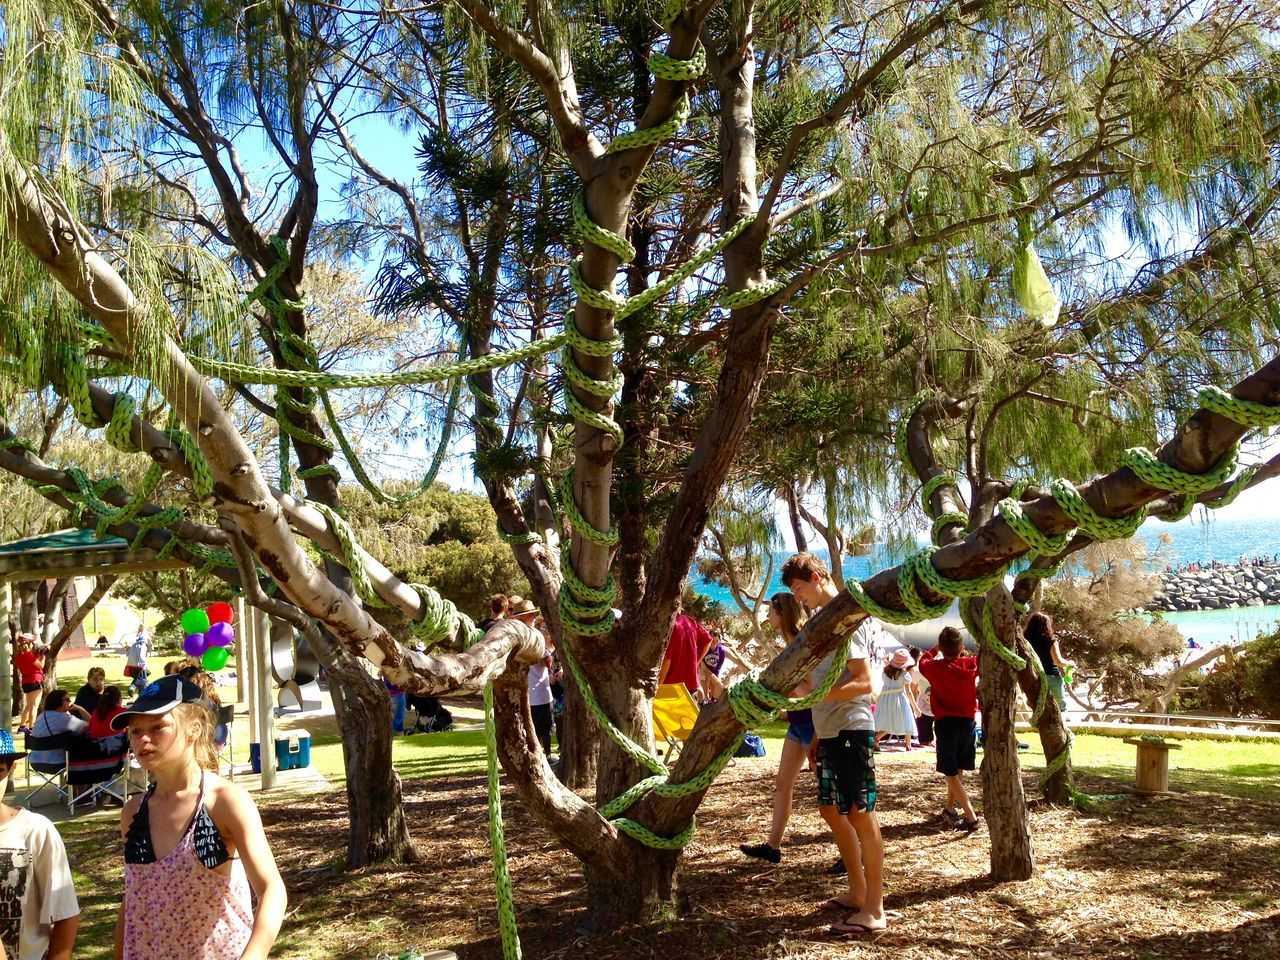 Woven Tree- Sculpture by the Sea, Cottesloe Beach-circa March 2014 Tree Woven Western Australia Weekend Activities Vacations Sculptures By The Sea Recreational Pursuit Sculpture Perth Outdoors Incidental People Expressive Sculpture Cottesloe Beach Enjoyment Art Event Art Abstract Knit Draped Tree Woven Around Tree